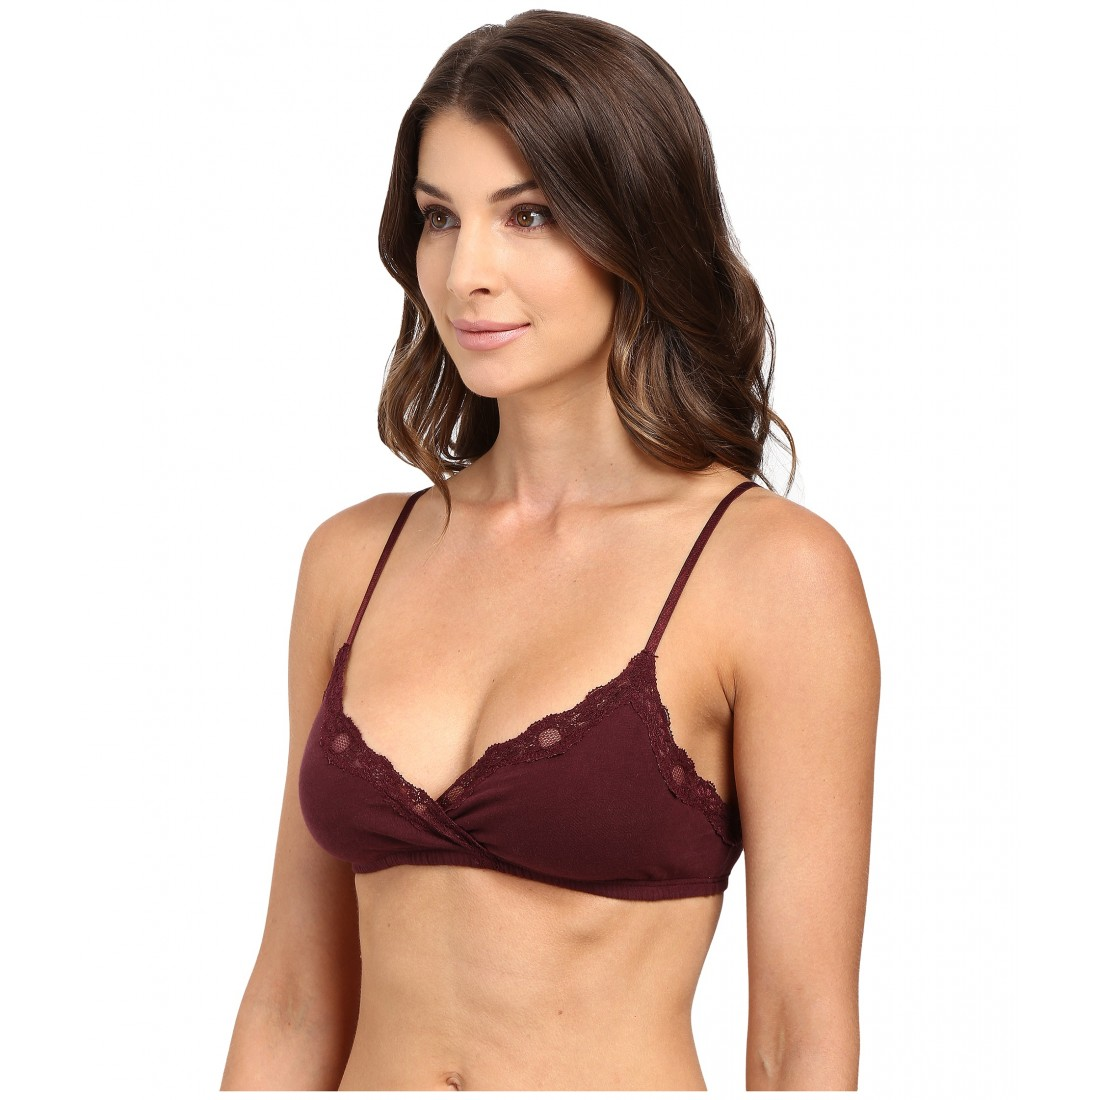 da524db0218a7 Only Hearts Organic Cotton Wrap Bralette ZPSKU 8753339 Wine